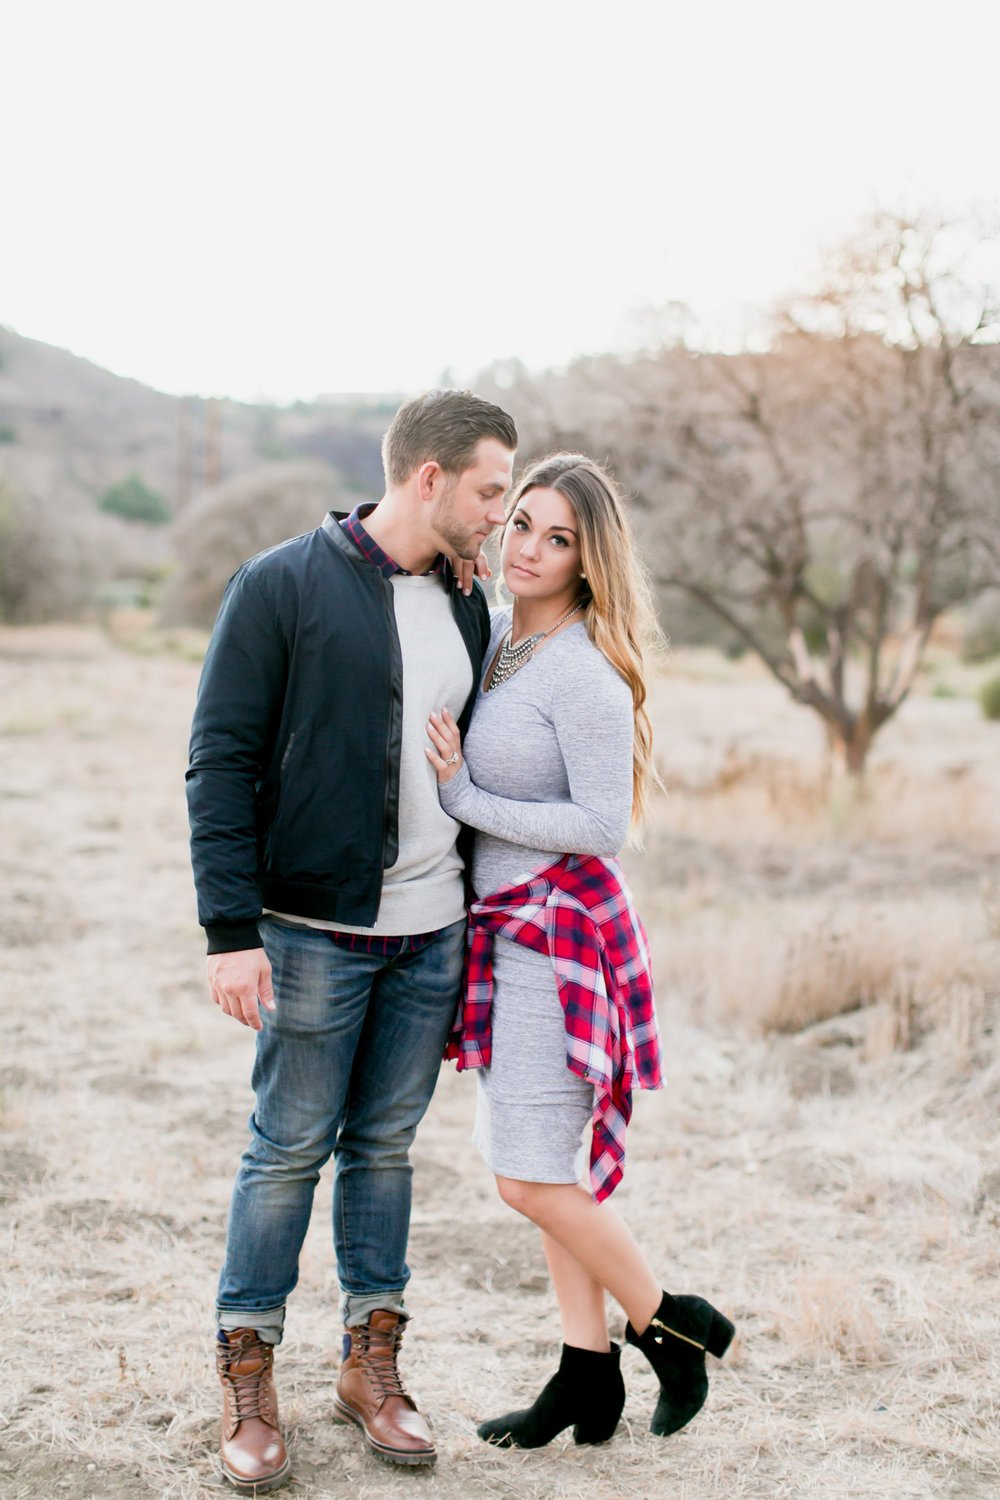 Engaged couple cuddles during outdoor engagement session in a field in San Juan Capistrano, California with Long Beach wedding photographer Lovisa Photo.